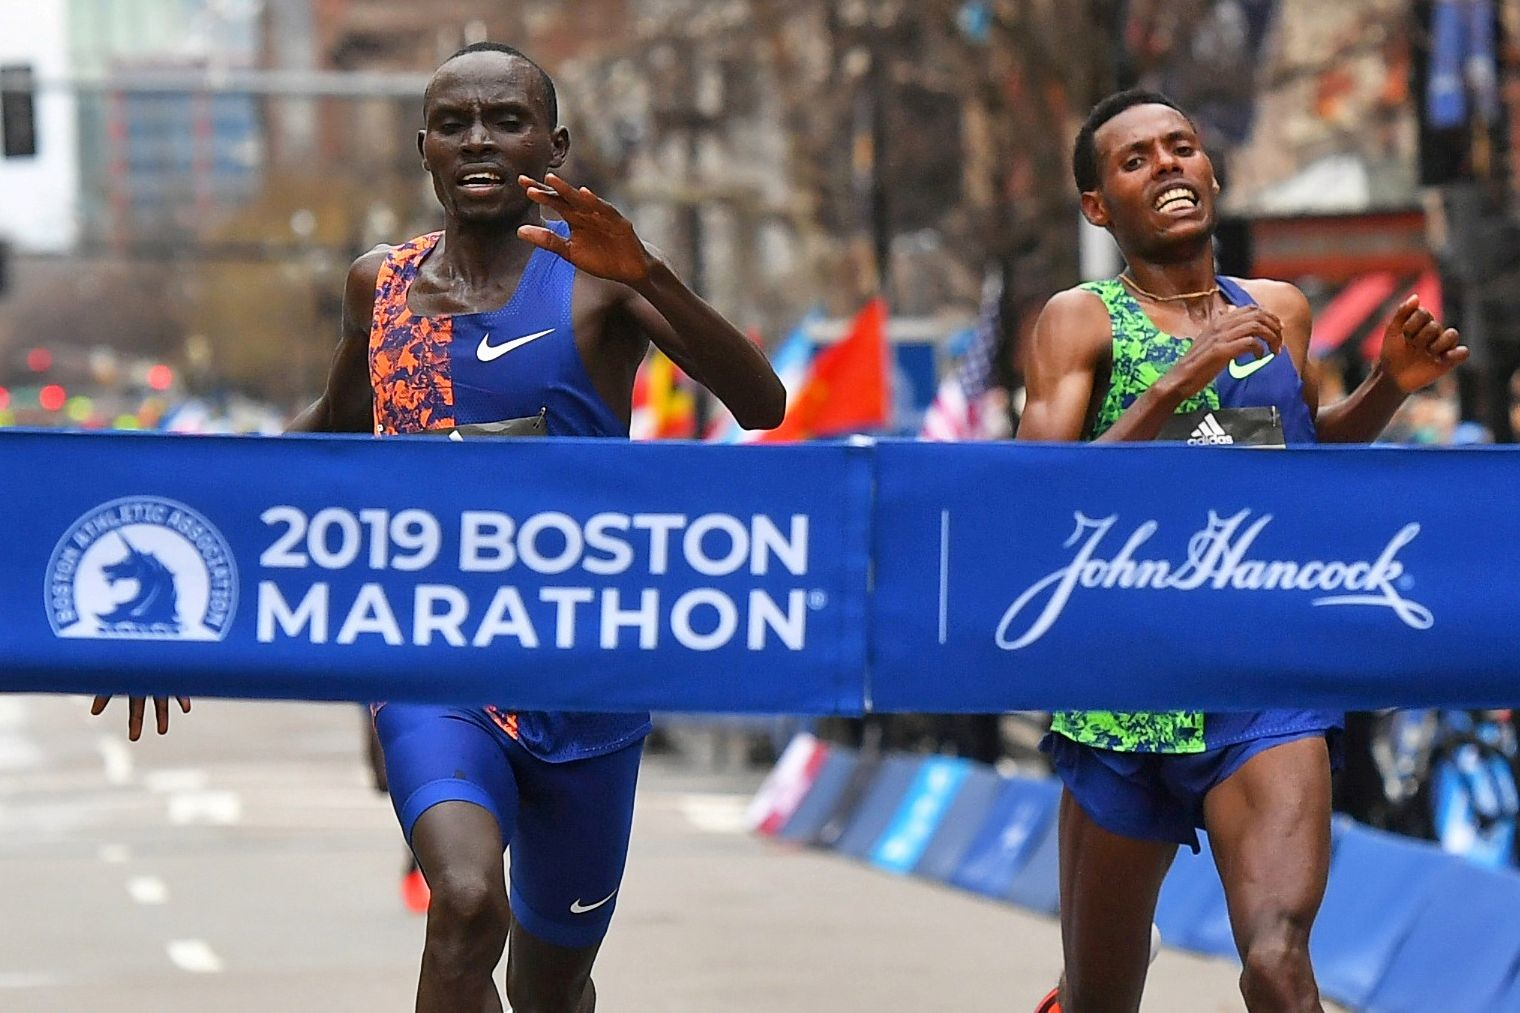 Marathon Monday in September?  Here is what we know so far about the 2020 Boston Marathon